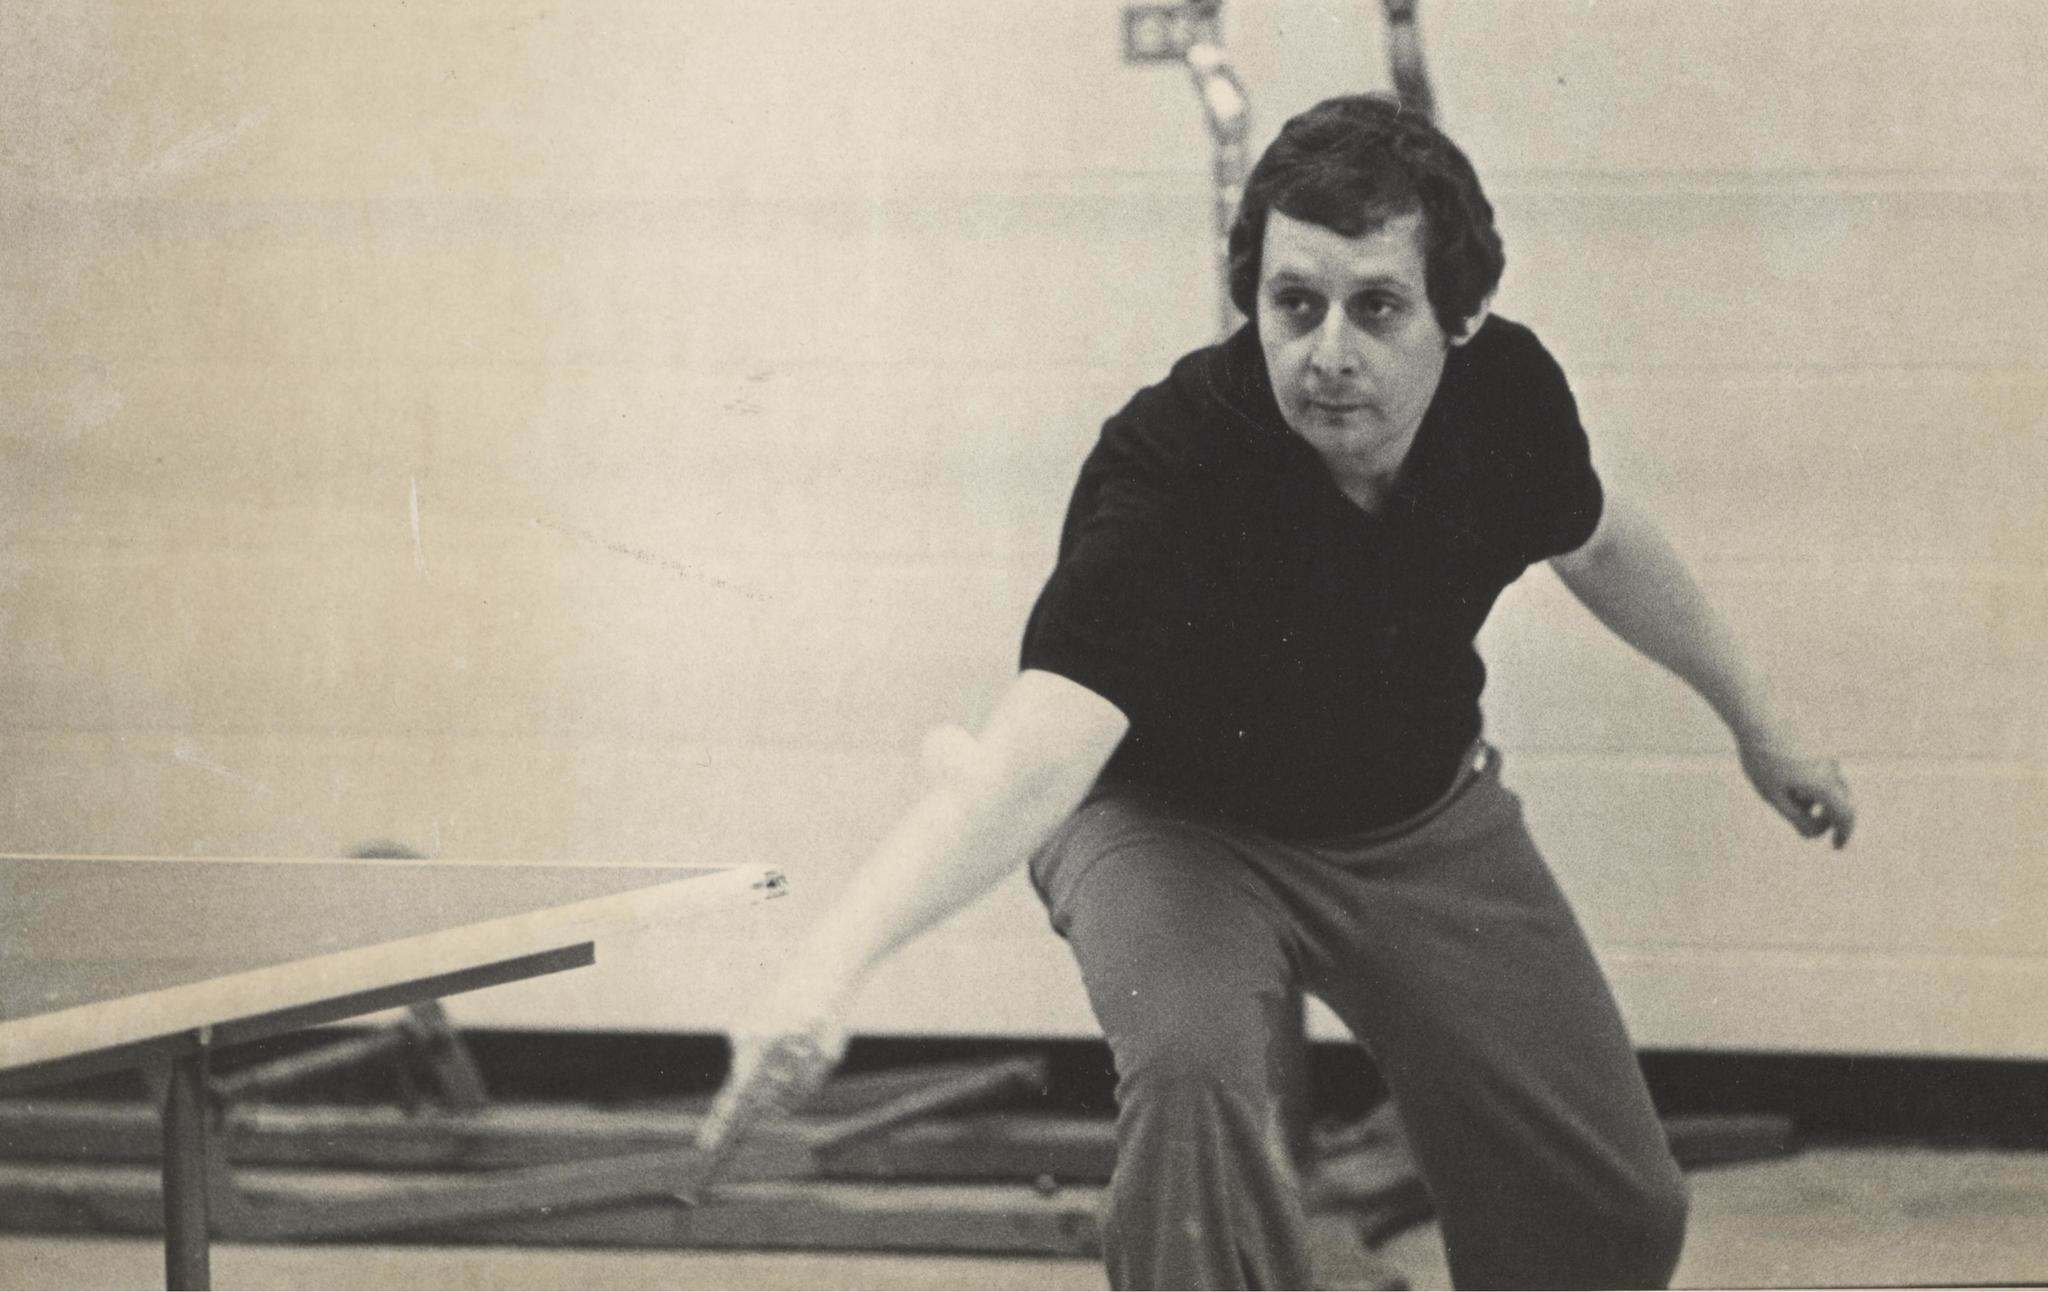 Manitoba Sports Hall of Fame</p><p>Werier was the first, and only, Manitoba Sports Hall of Fame inductee from table tennis.</p>